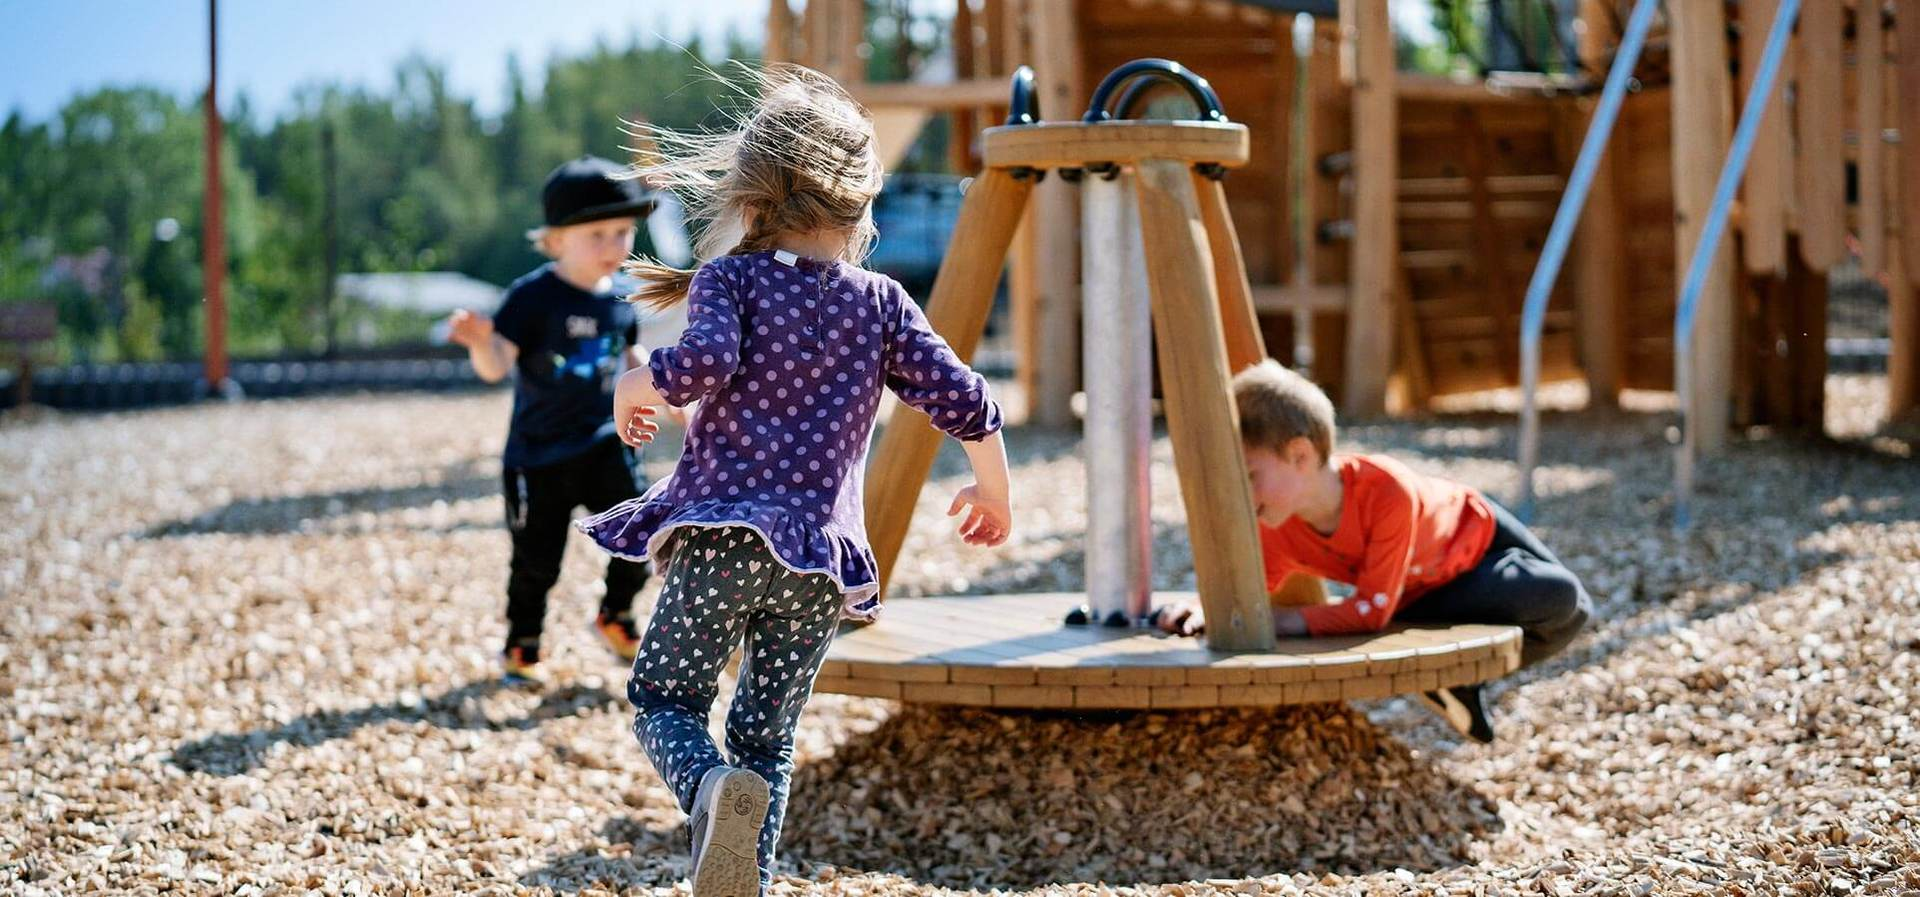 Children need the dizzying input that comes from spinning, sliding and swinging...